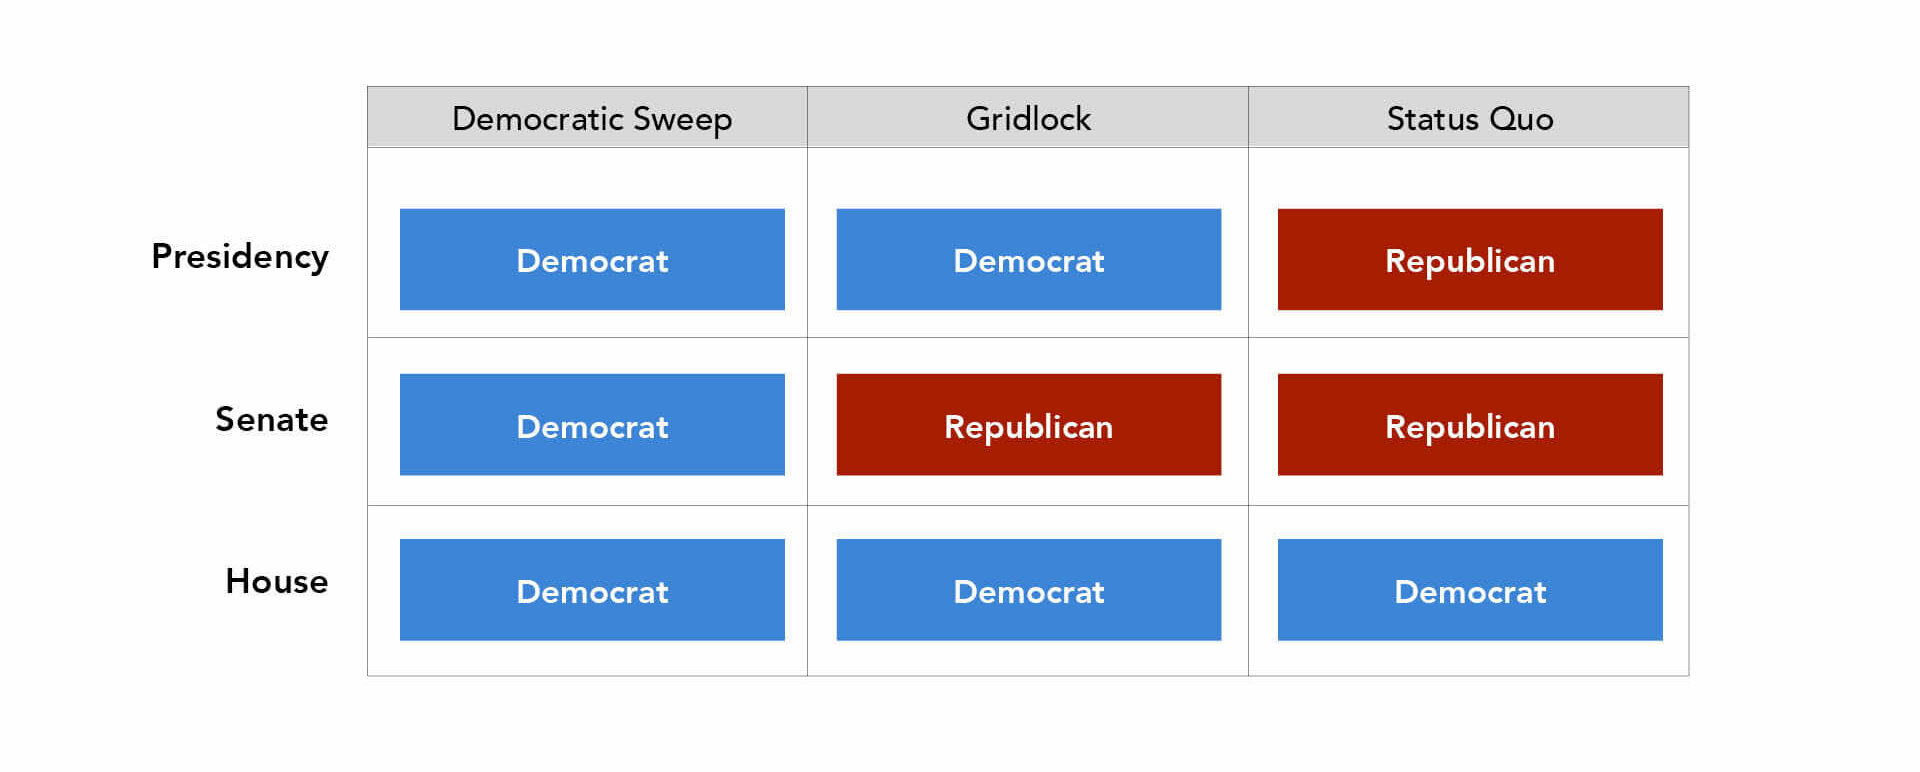 Three possible scenarios/ outcomes of the 2020 election